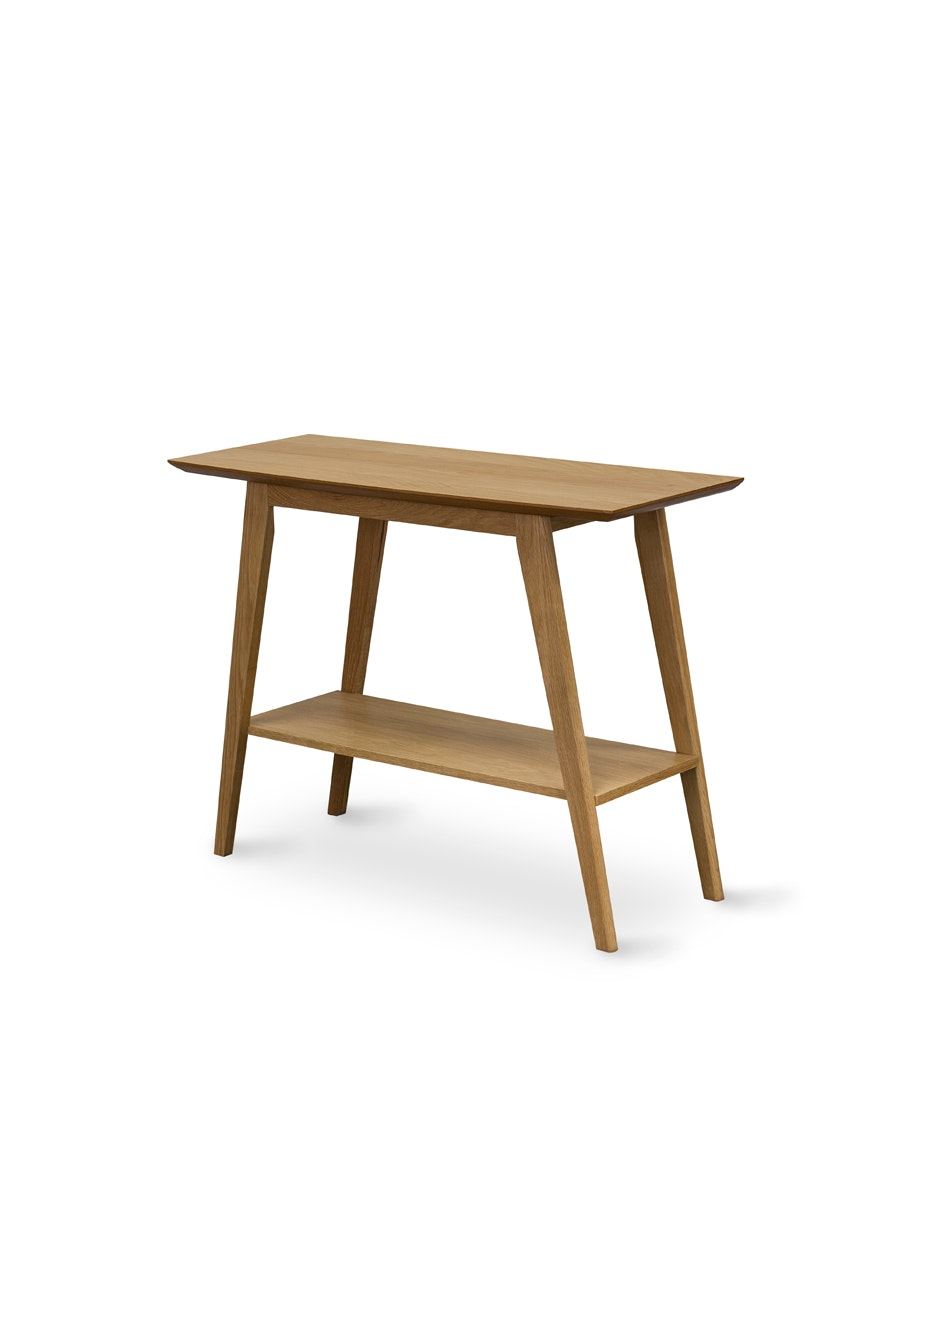 Furniture By Design - Milano Console Table w/Shelf- Light Oak